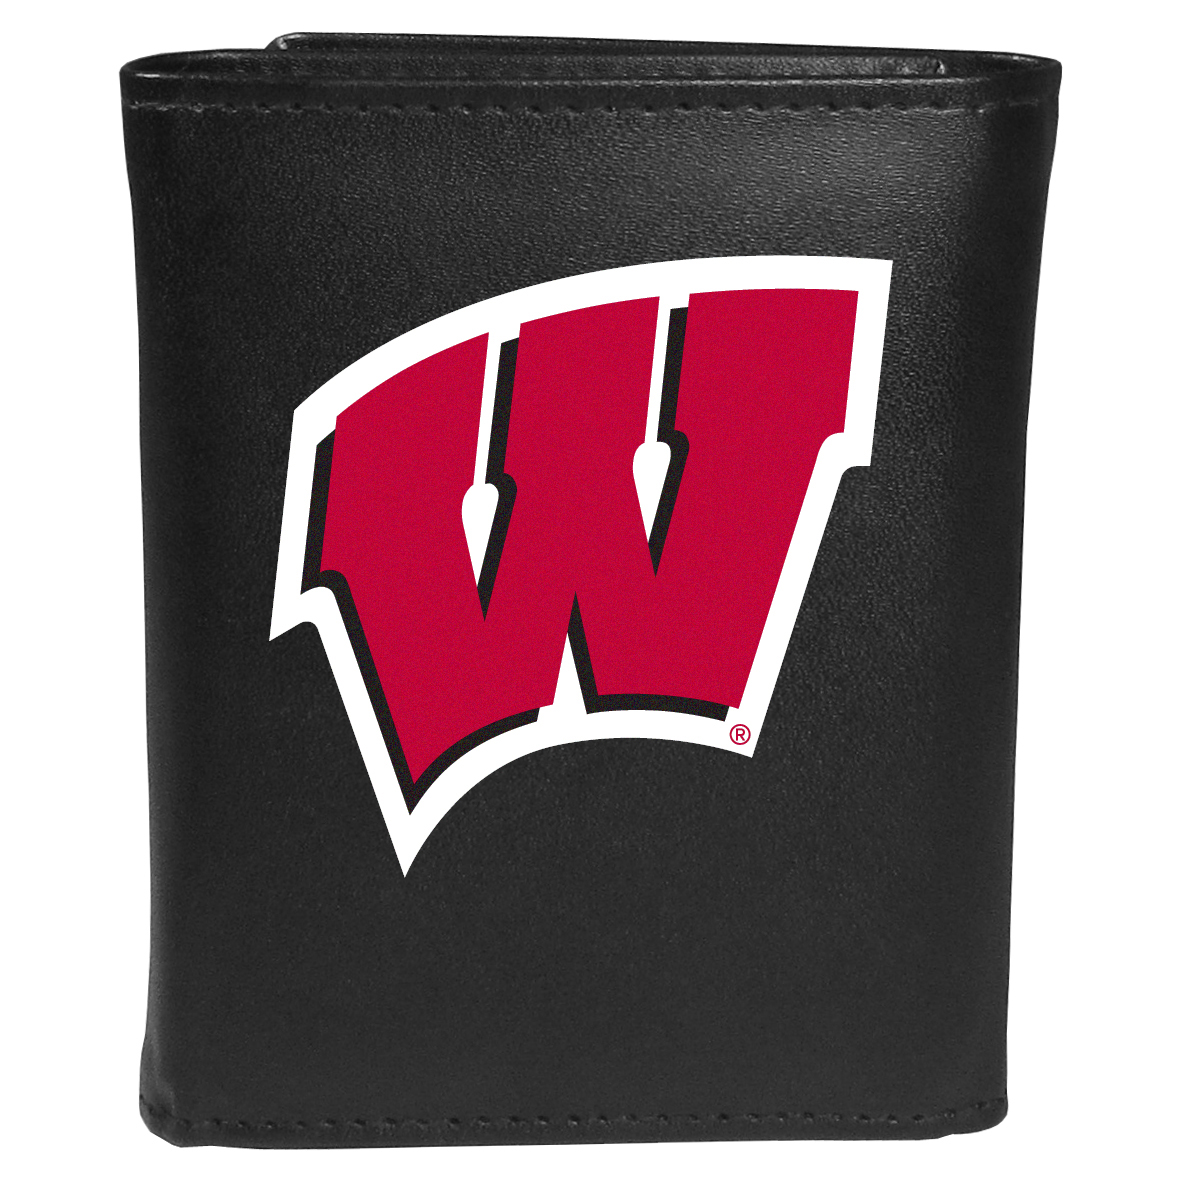 Wisconsin Badgers Tri-fold Wallet Large Logo - Sports fans do not have to sacrifice style with this classic tri-fold wallet that sports theWisconsin Badgers?extra large logo. This men's fashion accessory has a leather grain look and expert craftmanship for a quality wallet at a great price. The wallet features inner credit card slots, windowed ID slot and a large billfold pocket. The front of the wallet features an extra large printed team logo.